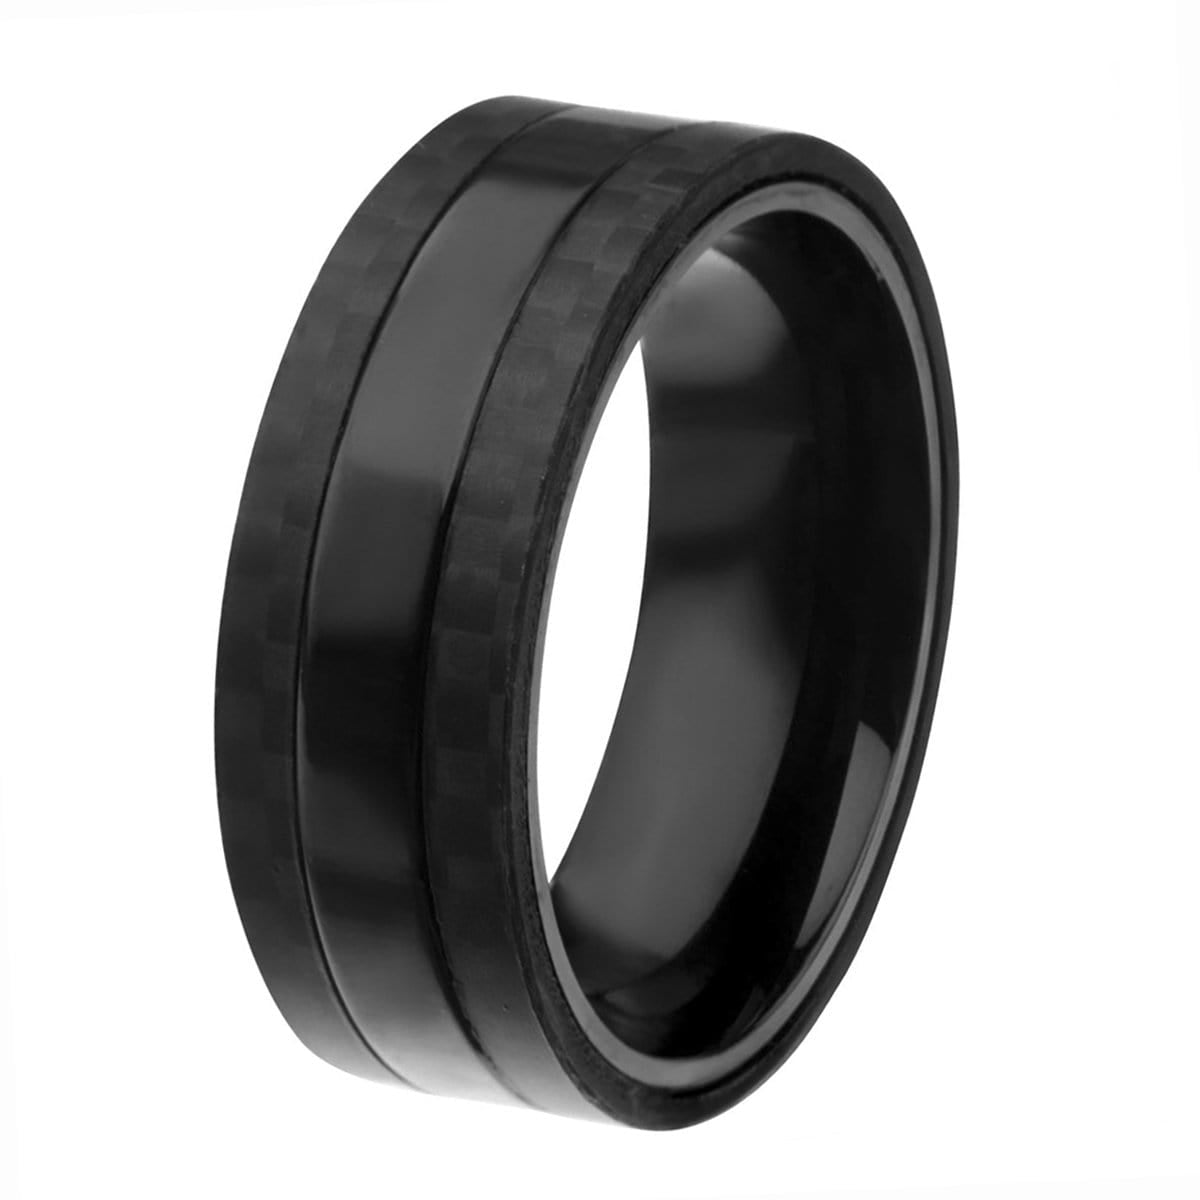 Black Stainless Steel Smooth Band with Carbon Fiber Detail Rings